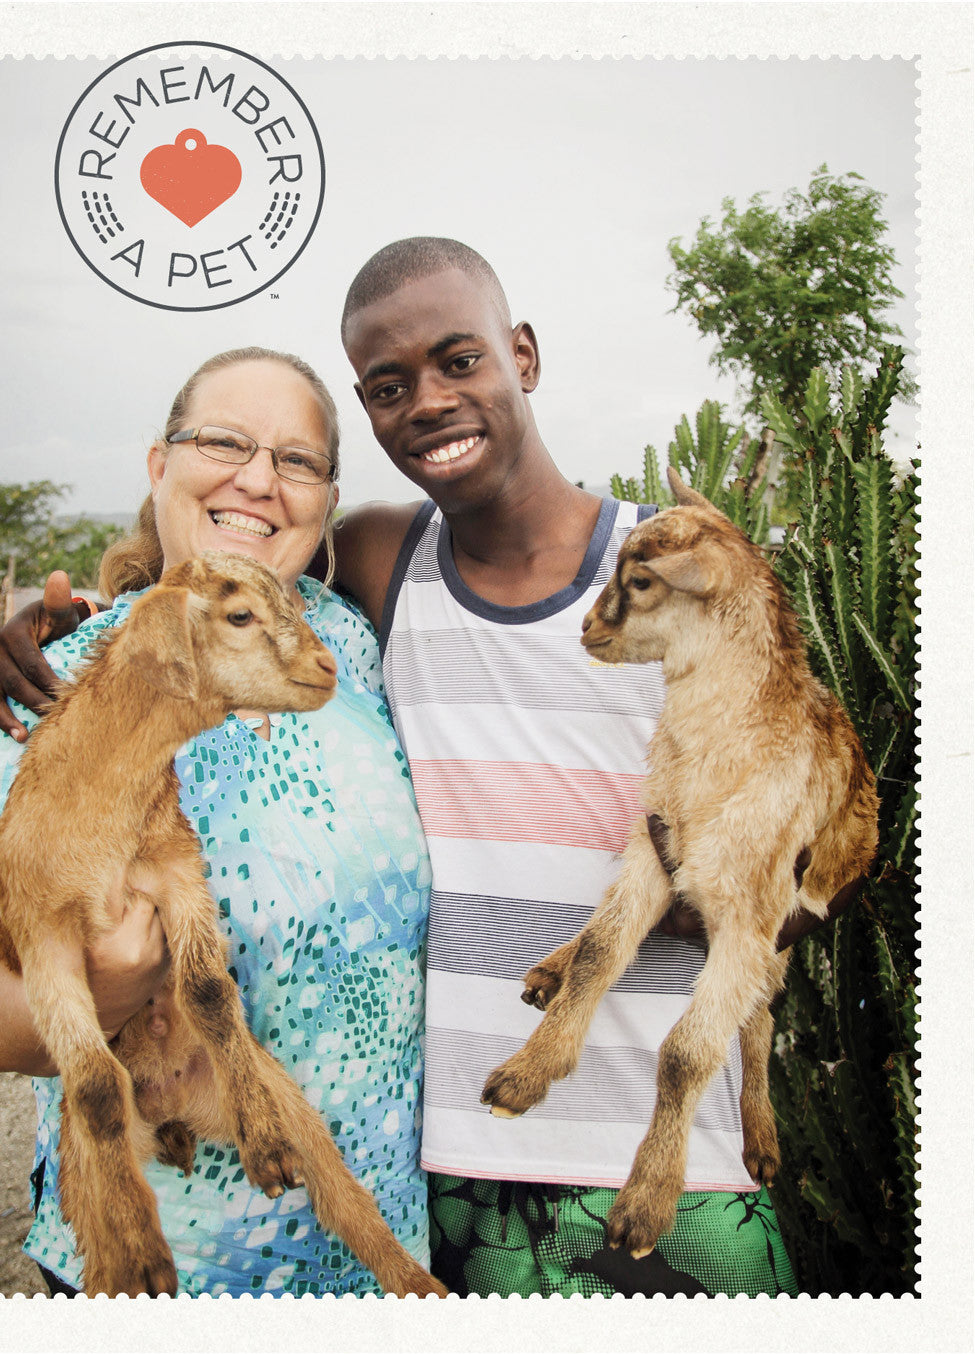 Vet with Young Man and Goats